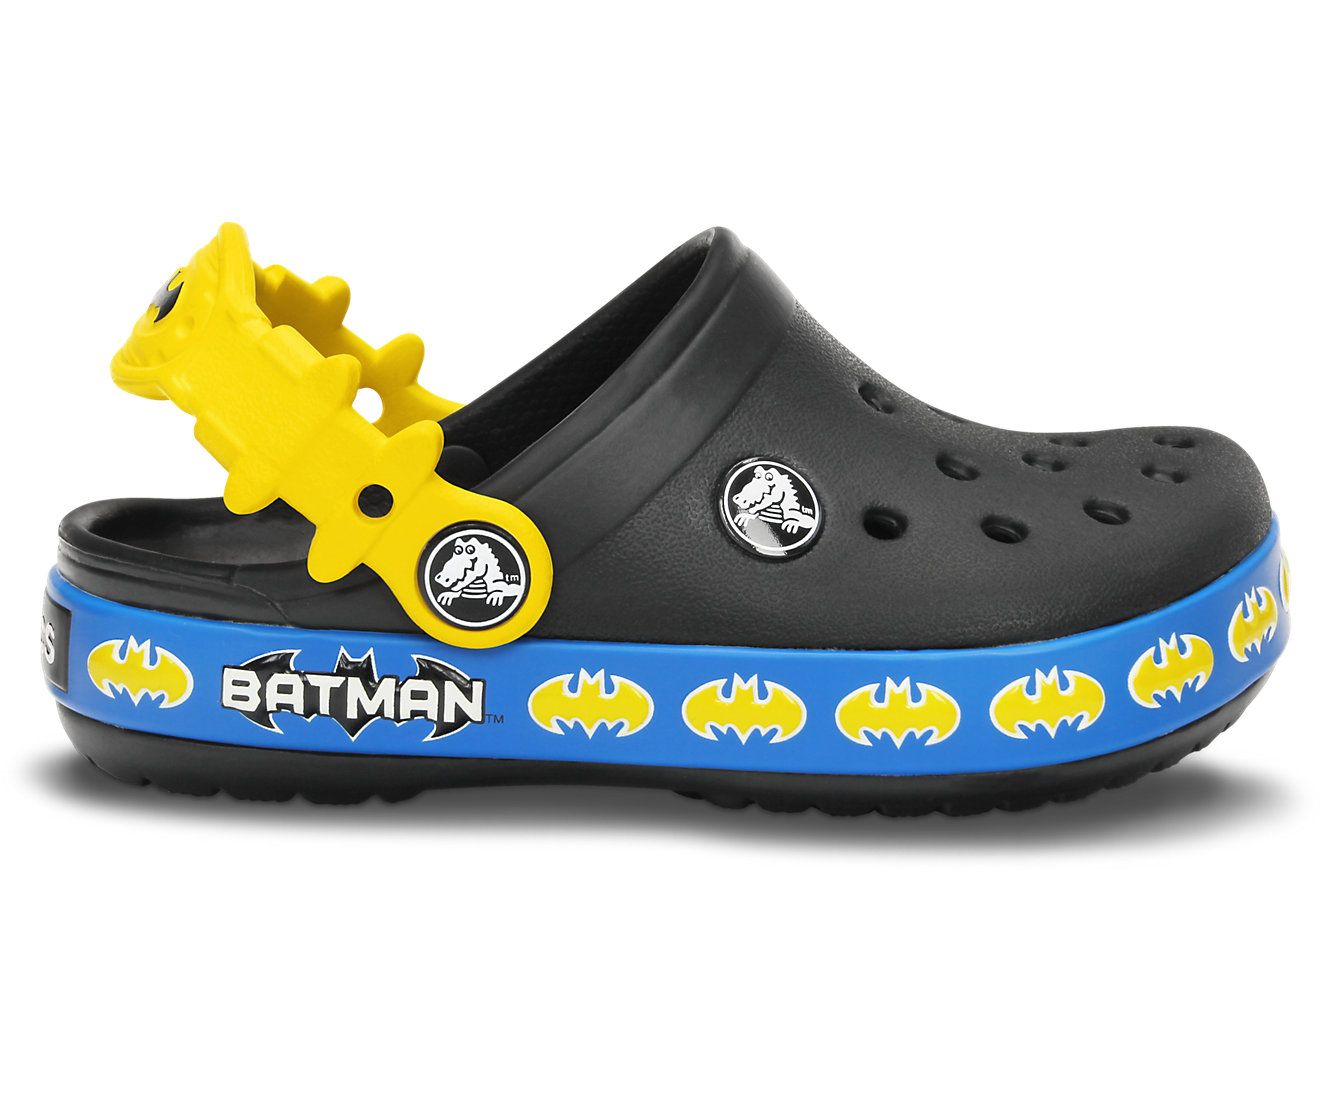 858c87fd70 Crocs Batman™ Shield Clog - SO cute (and also classic) | Styles For ...